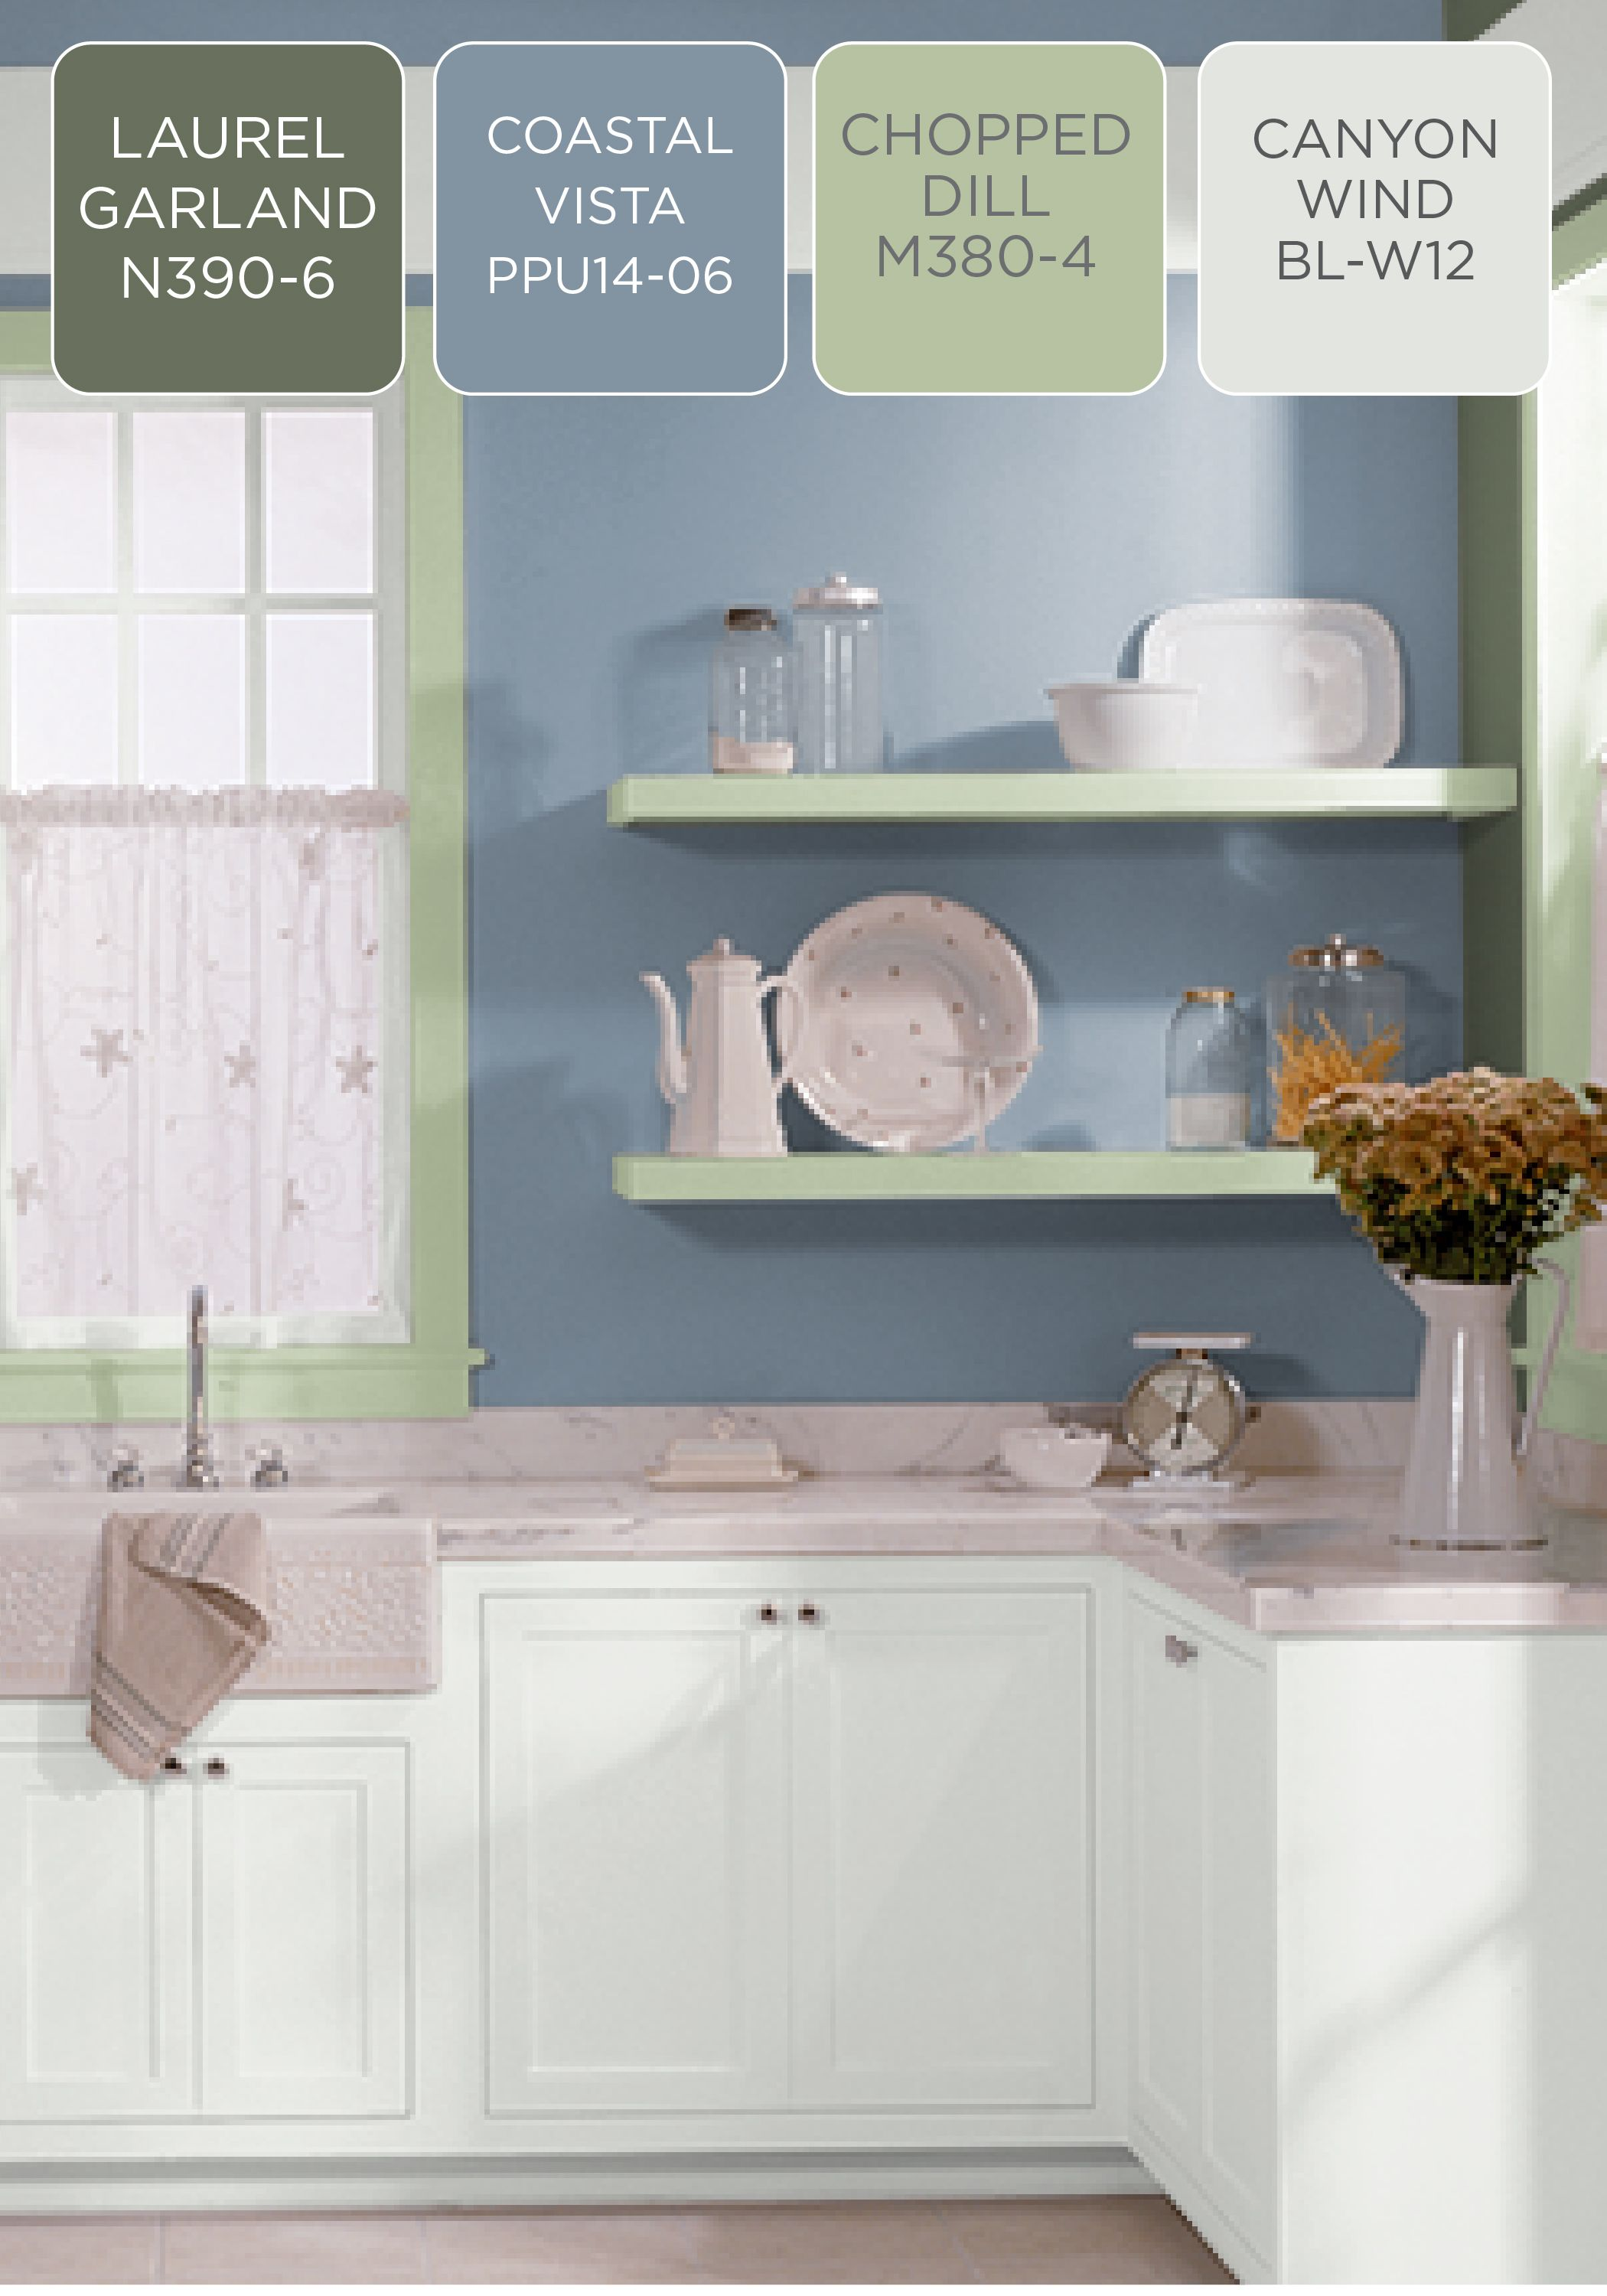 Whether you're looking to make your kitchen more calming